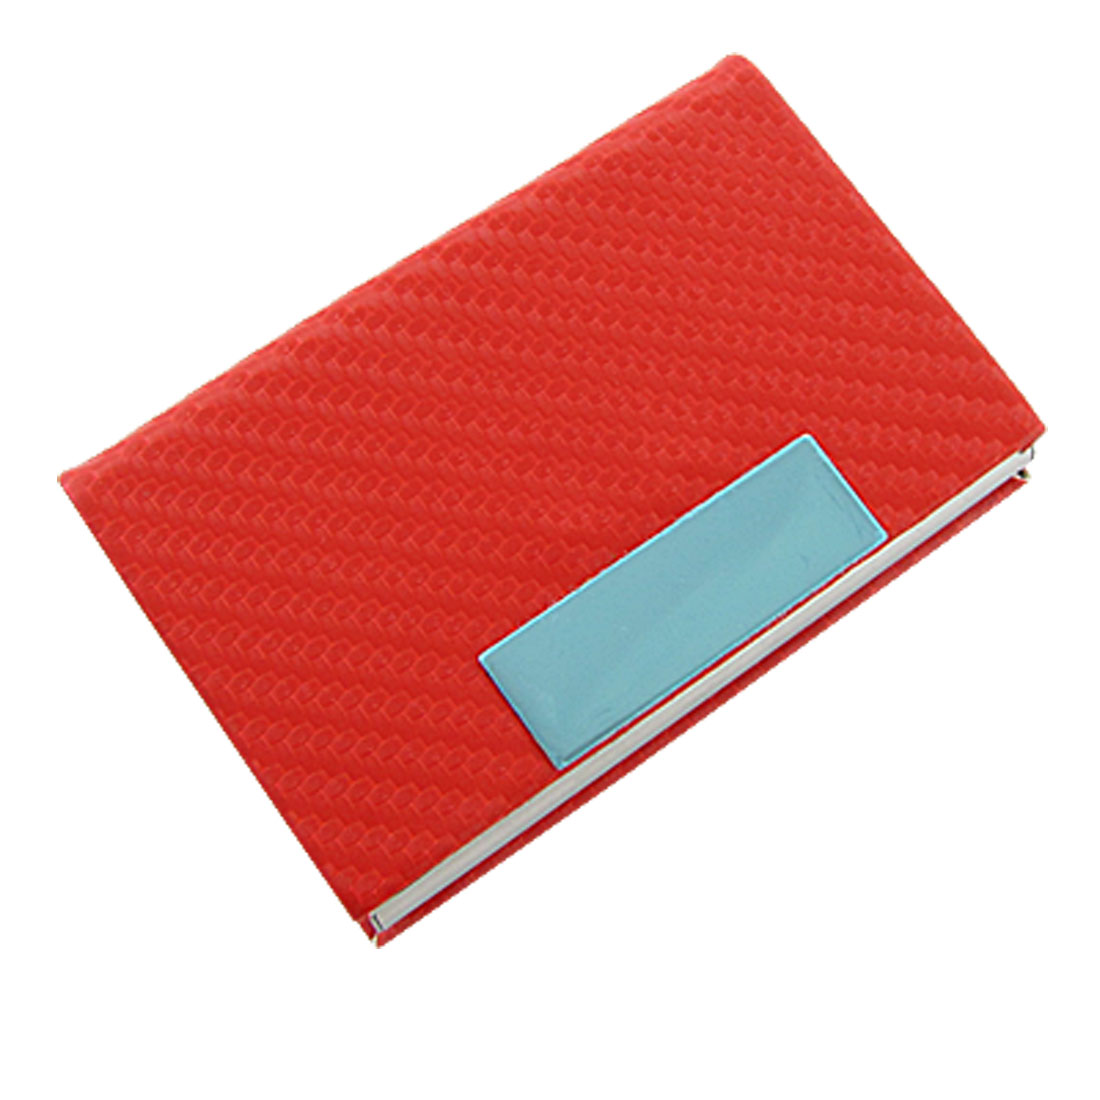 Business Credit ID Name VIP Card Holder Organizer Red